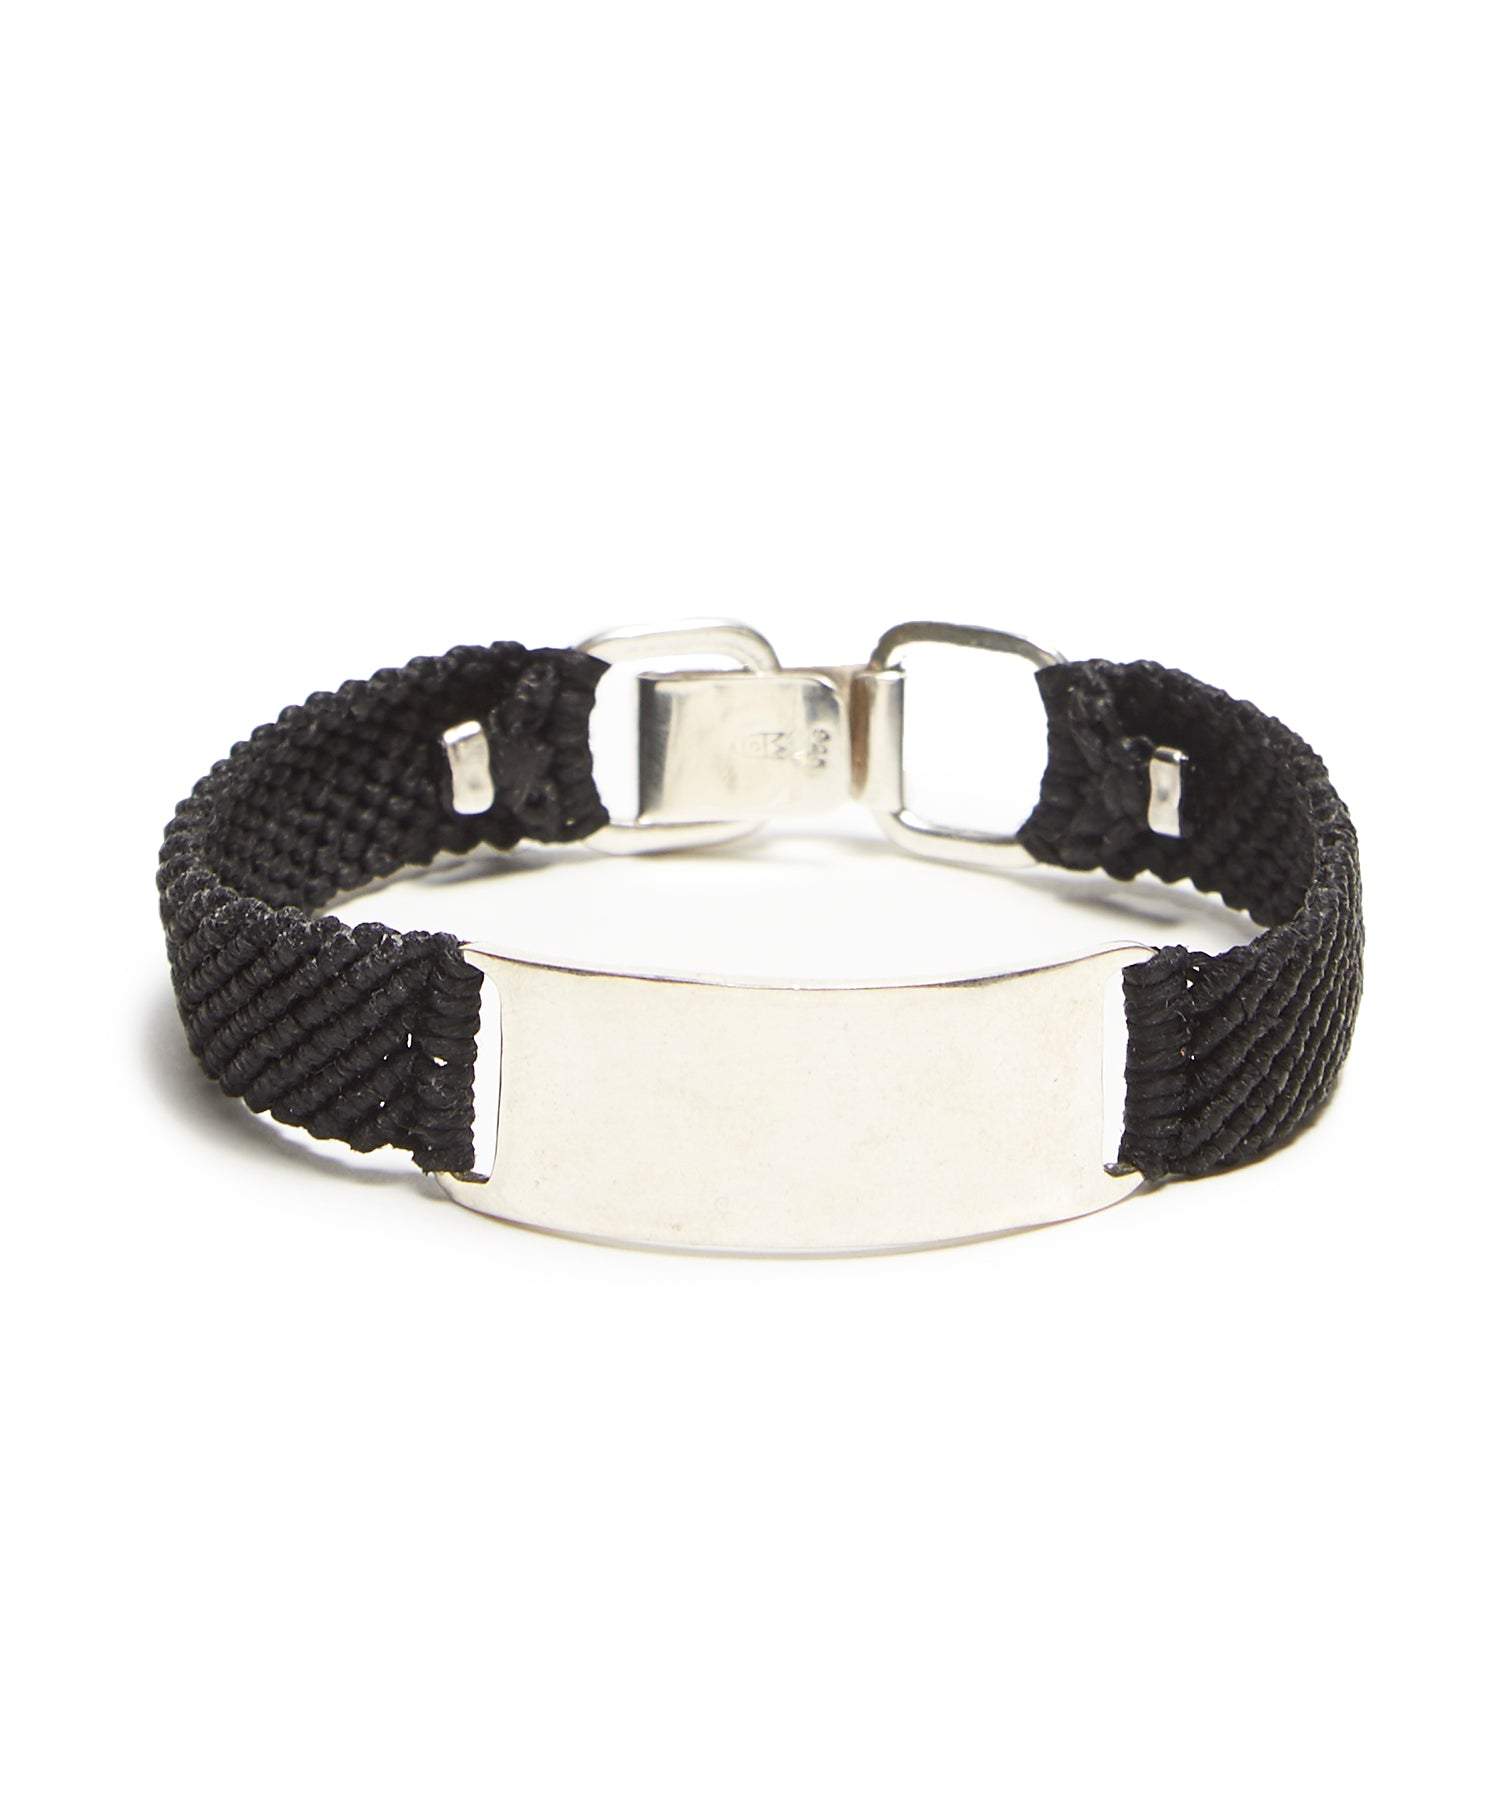 Scosha Belt ID in Silver and Black